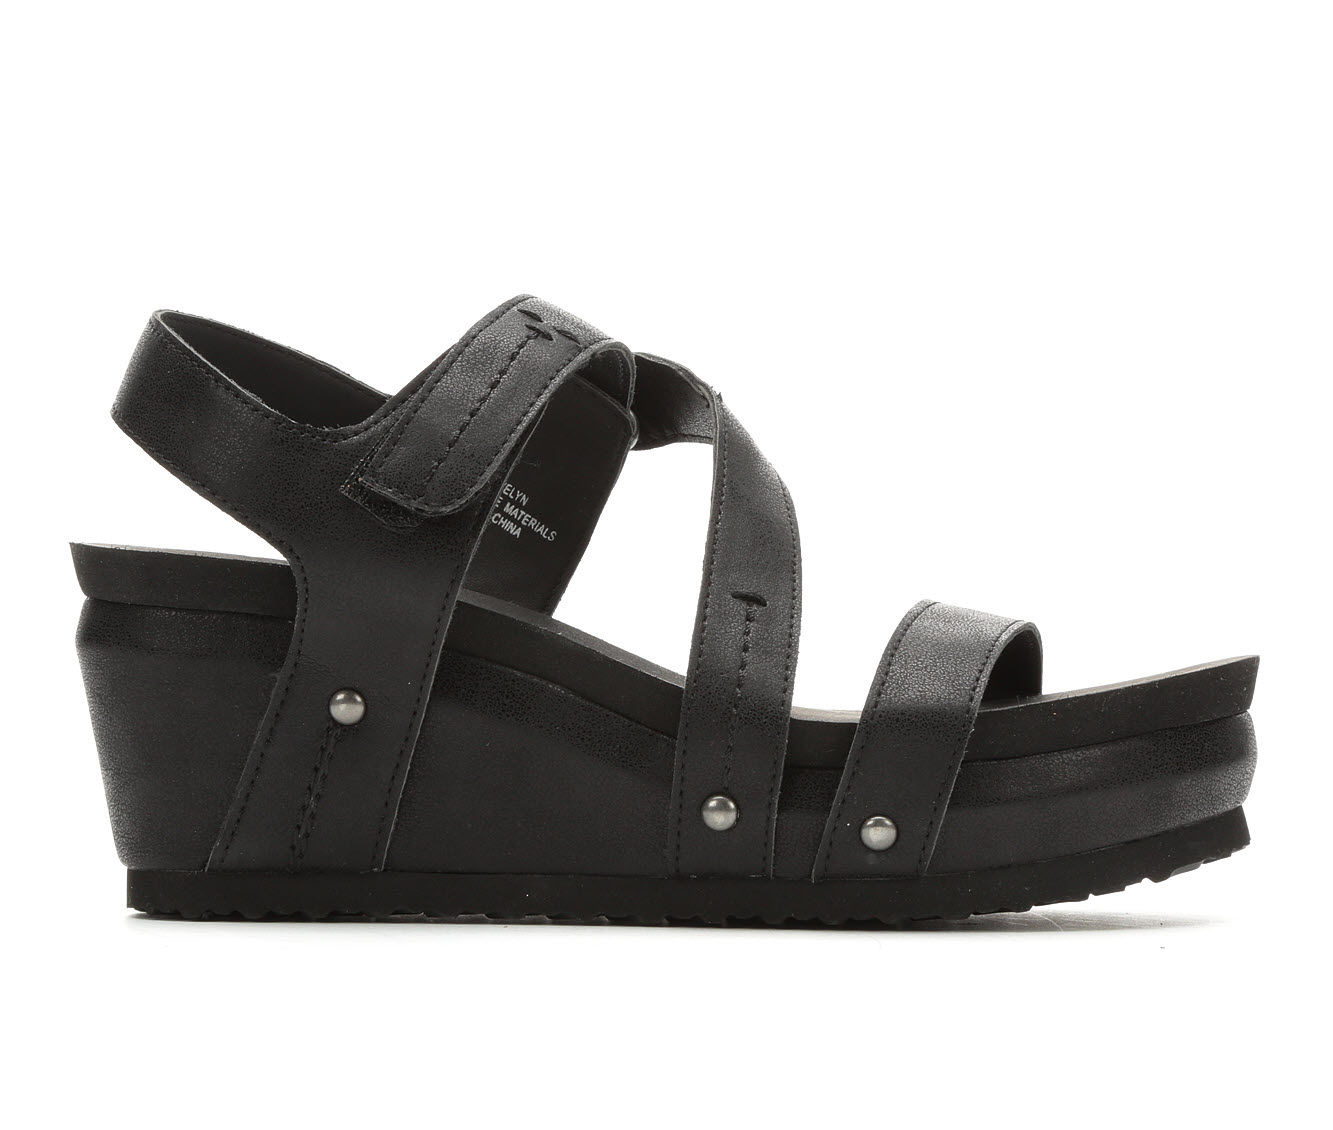 Axxiom Evelyn Women's Sandal (Black Faux Leather)